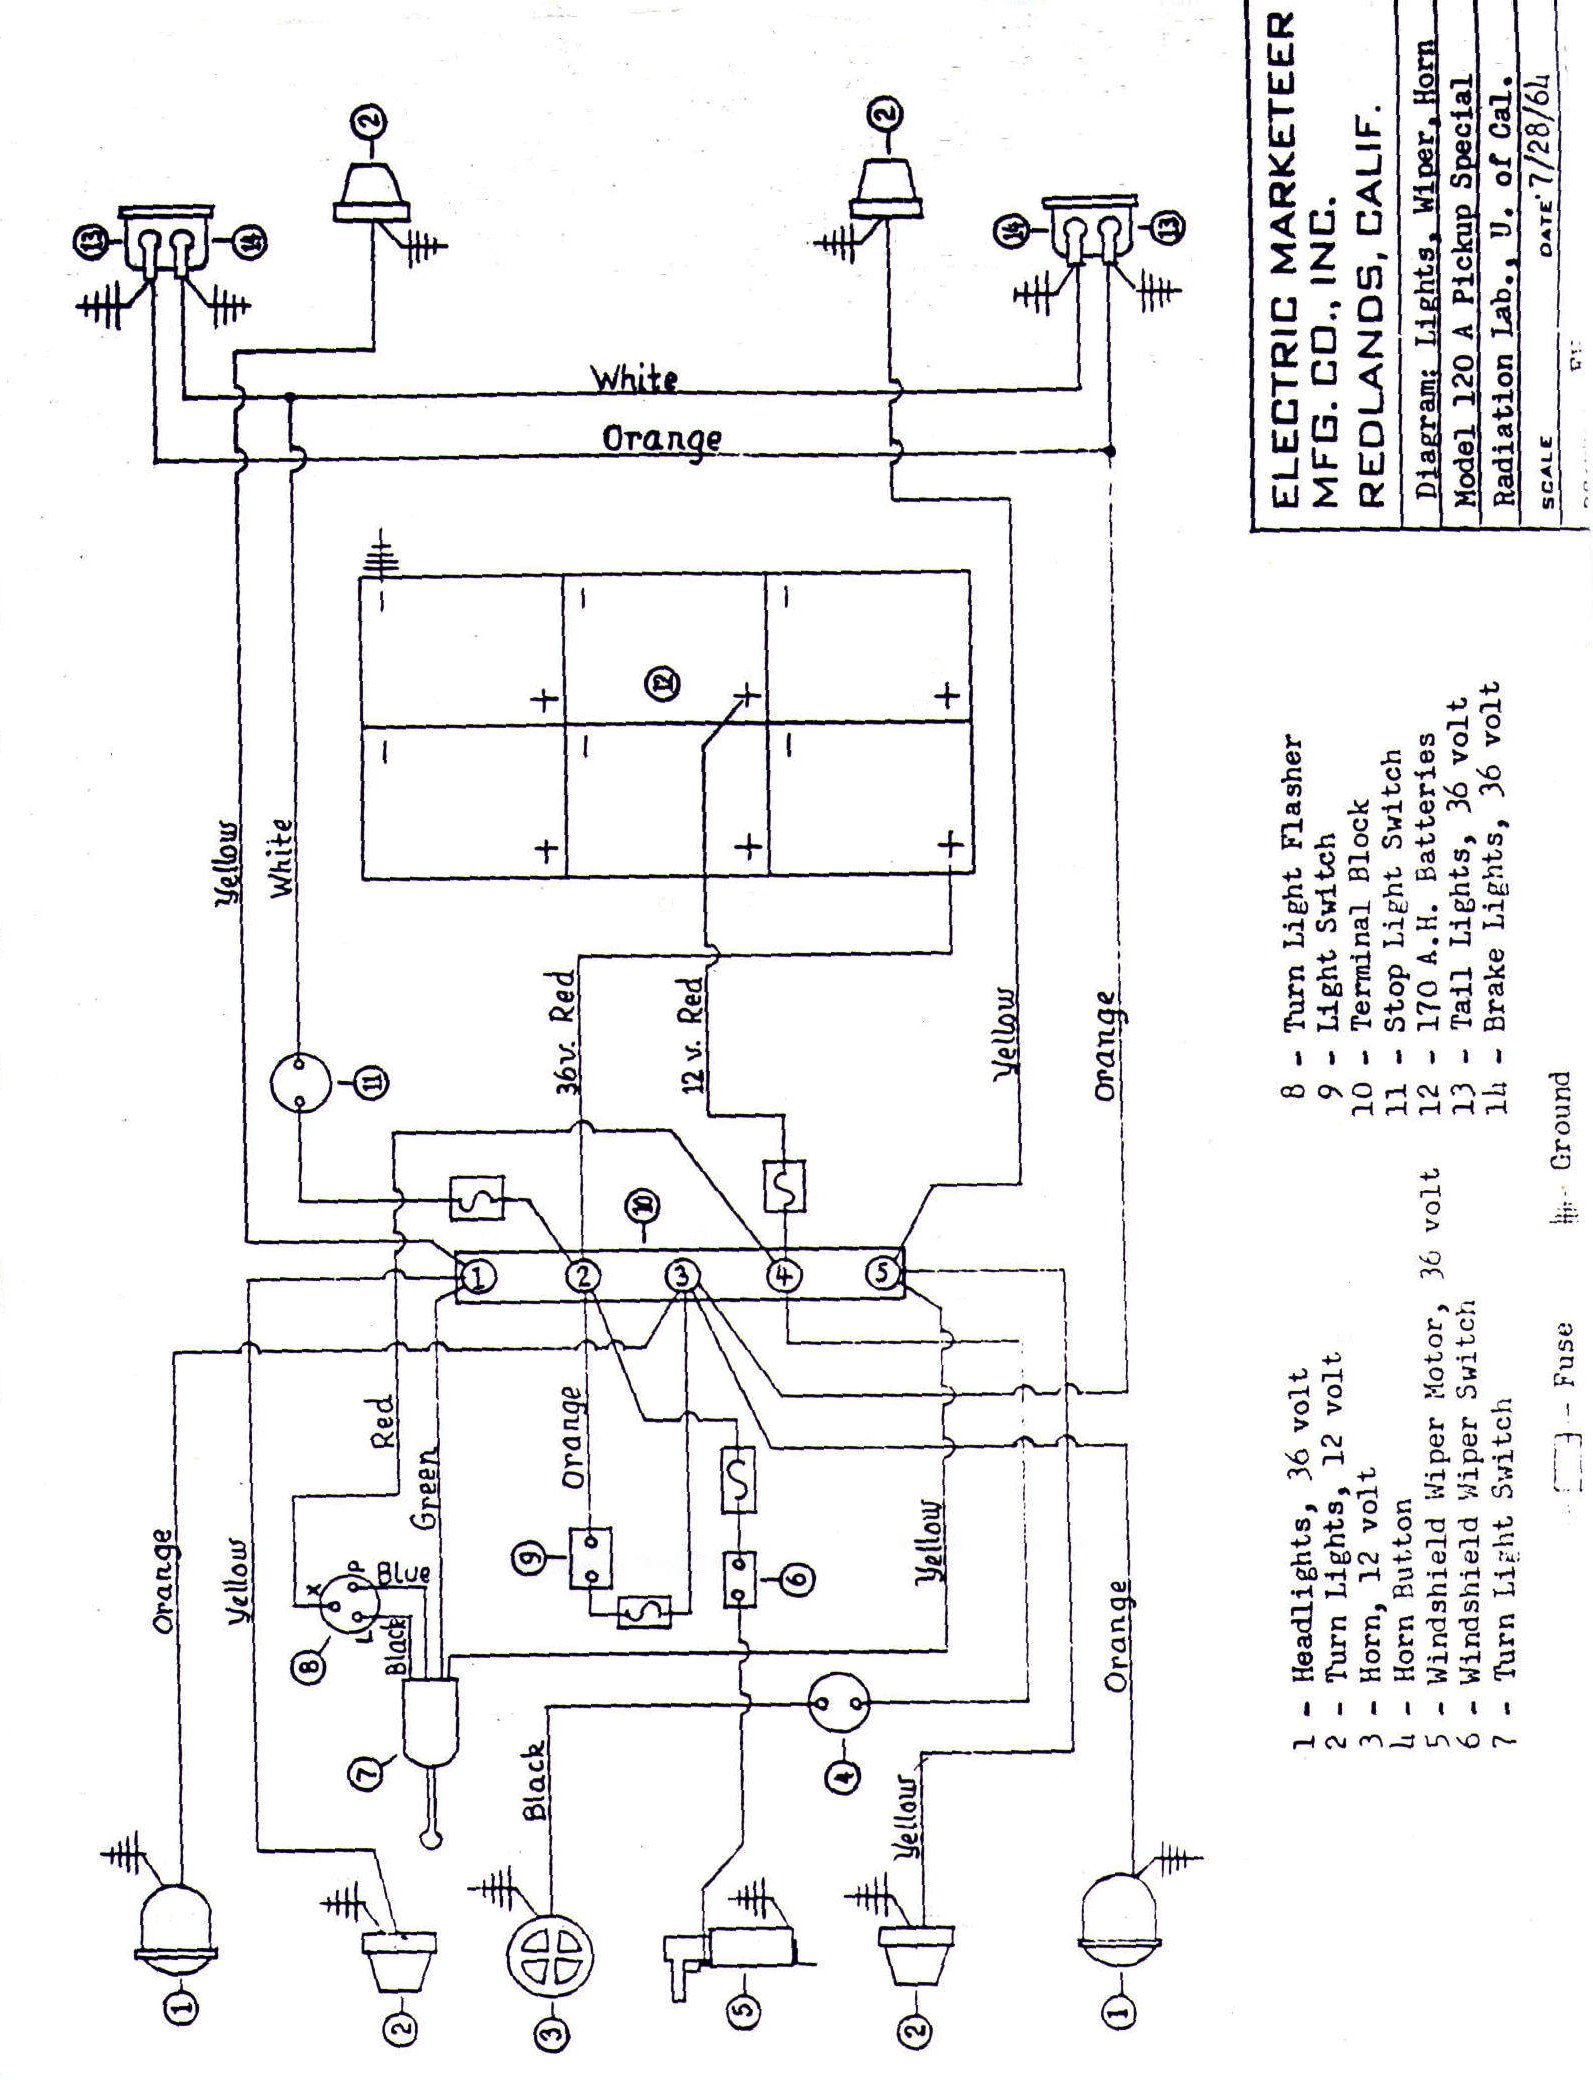 Markeeter_Wiring_Diagram_2 vintagegolfcartparts com westinghouse golf cart wiring diagram at webbmarketing.co